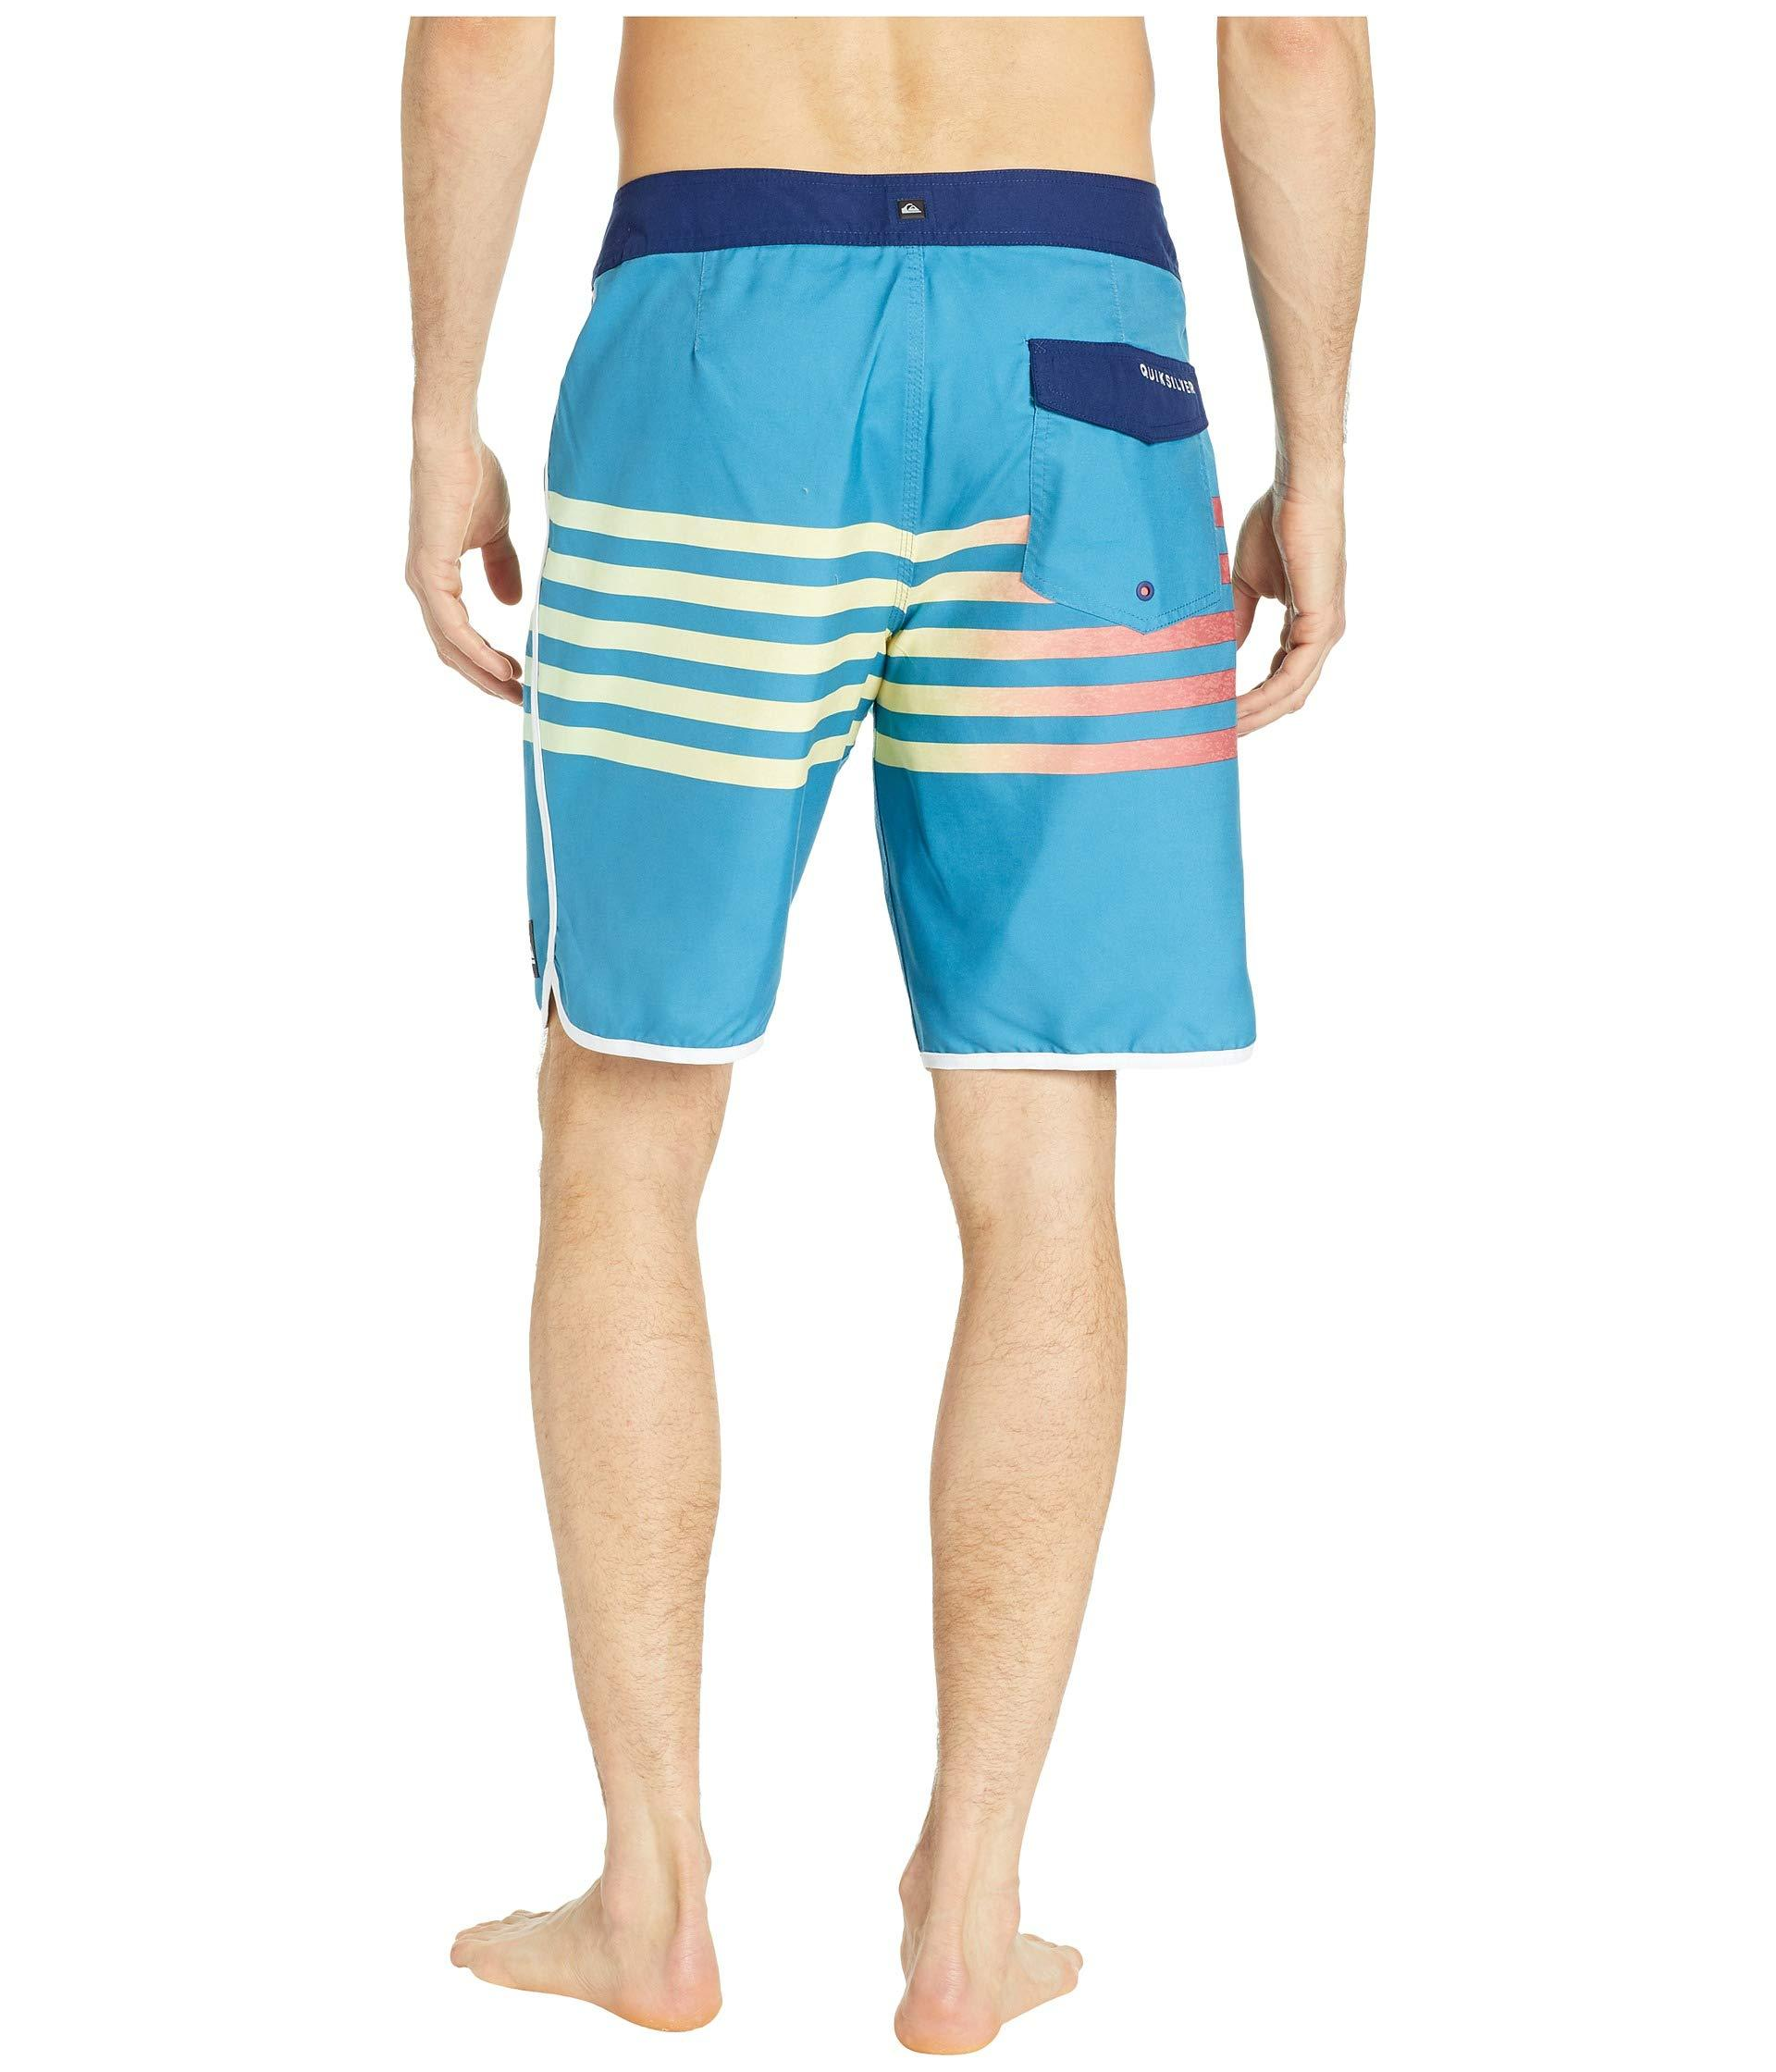 9a39839b09 Quiksilver - Blue Everyday Grass Roots 20 Boardshorts (southern Ocean) Men's  Swimwear for Men. View fullscreen